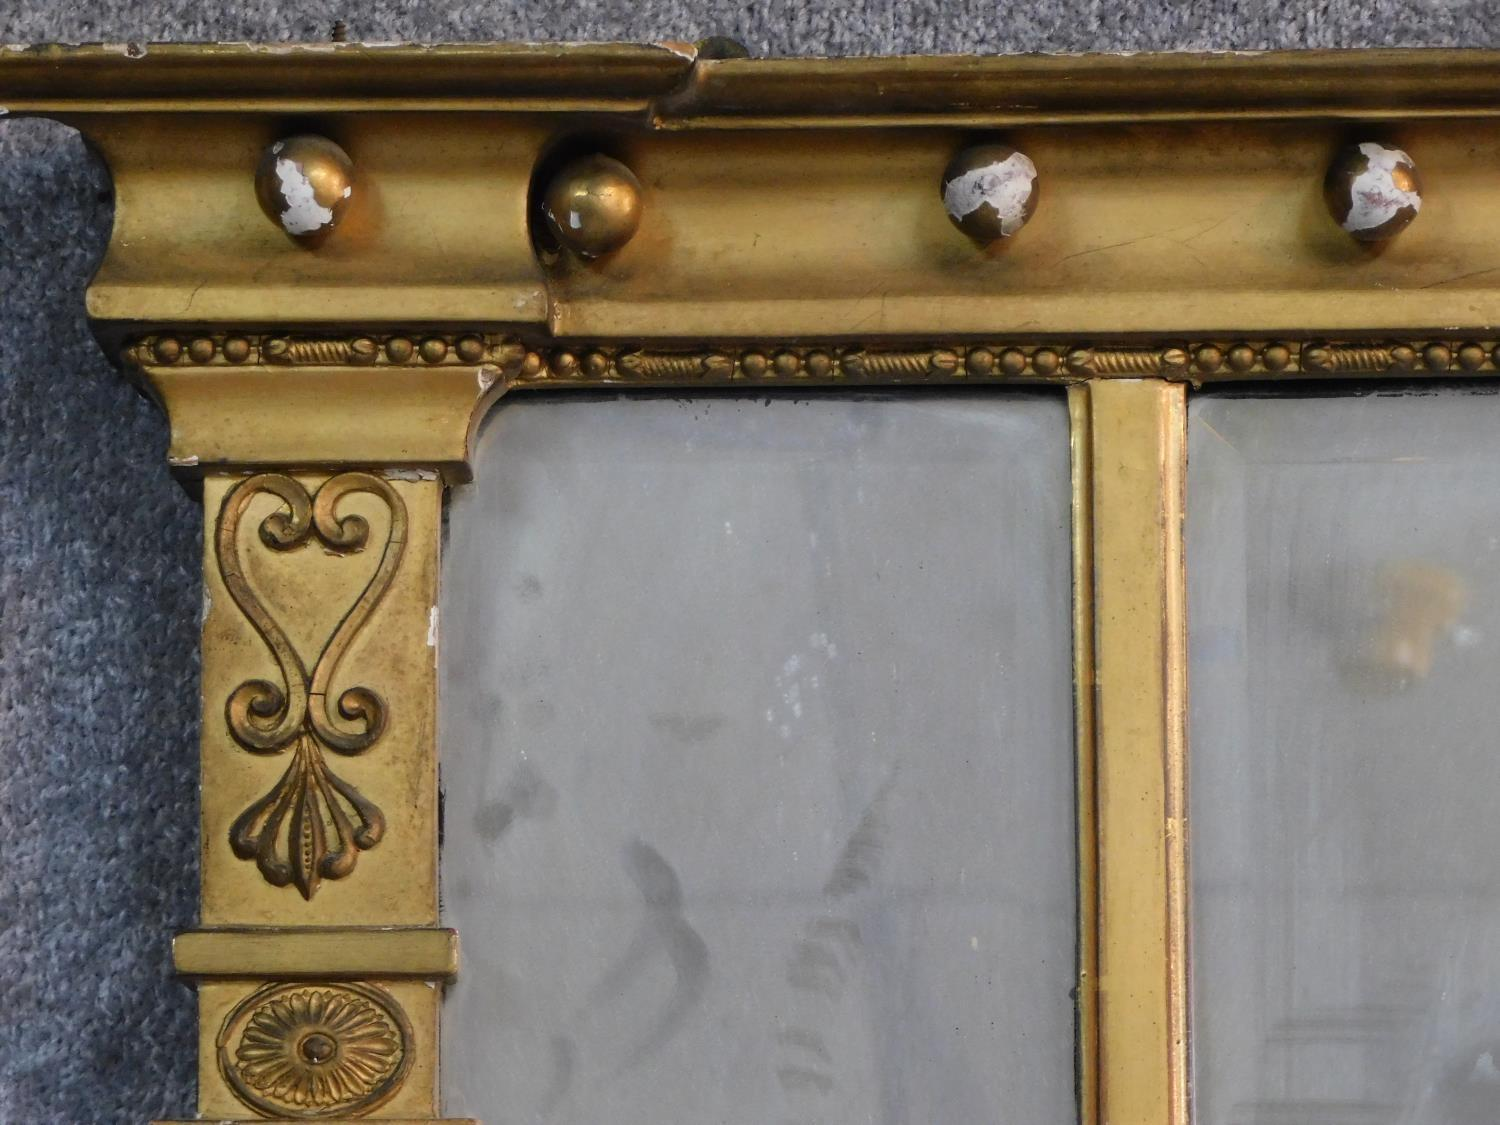 A Regency gilt triple section overmantel mirror with original bevelled plates flanked by reeded - Image 2 of 5